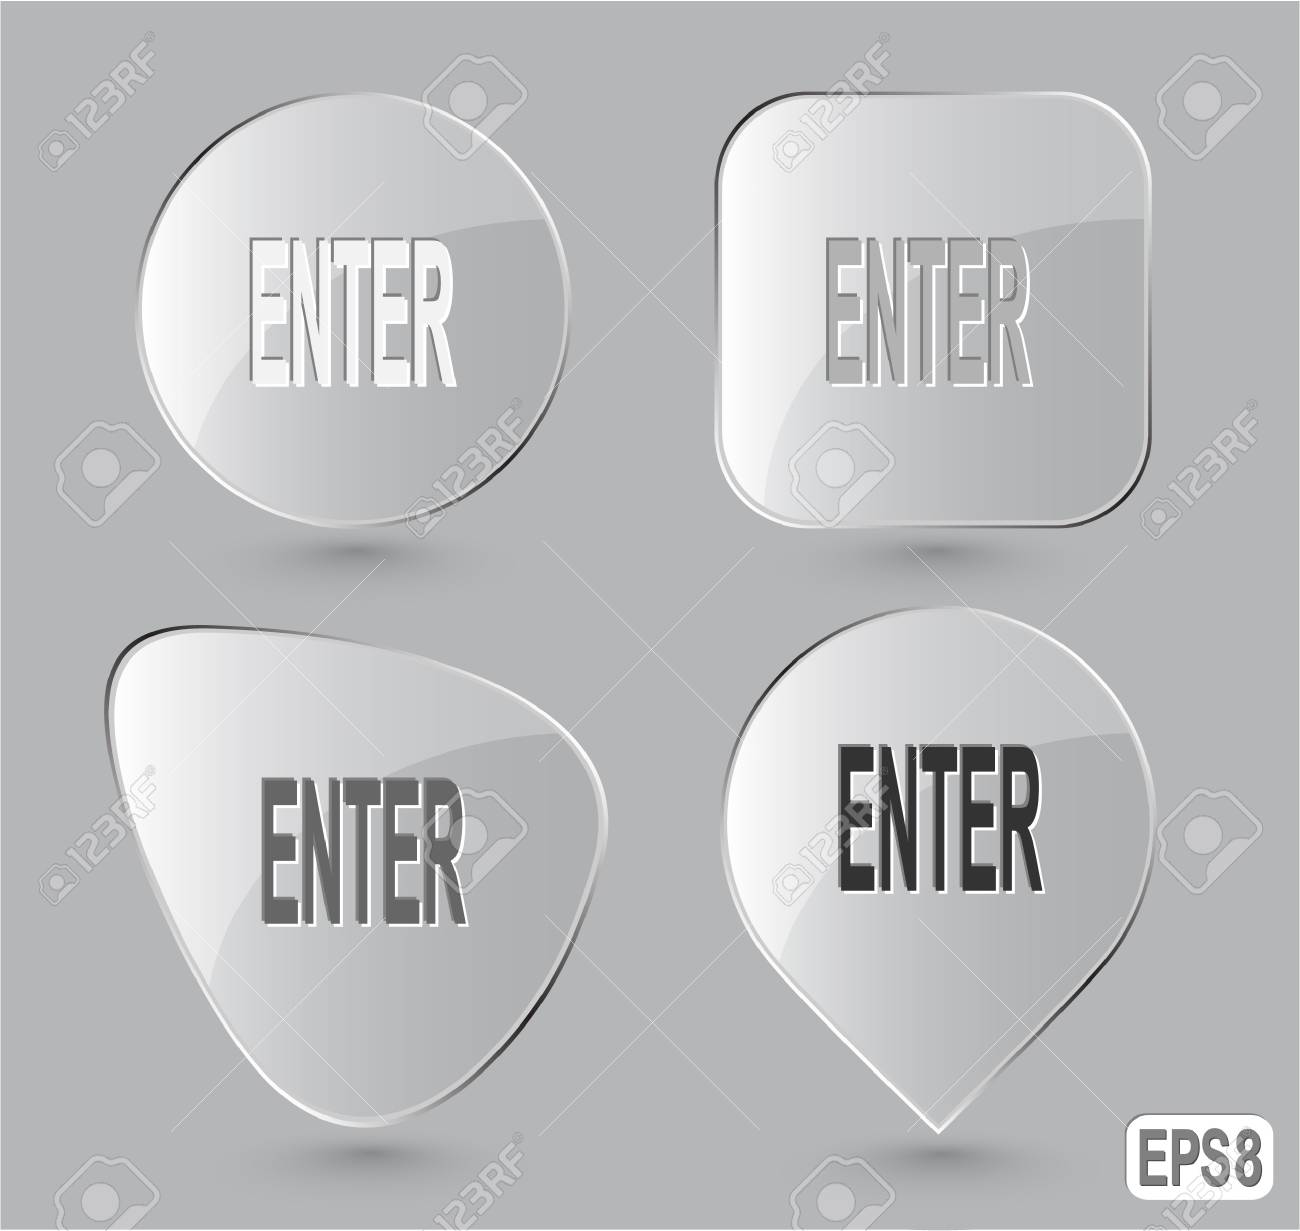 Enter. Glass buttons. Stock Photo - 15590597